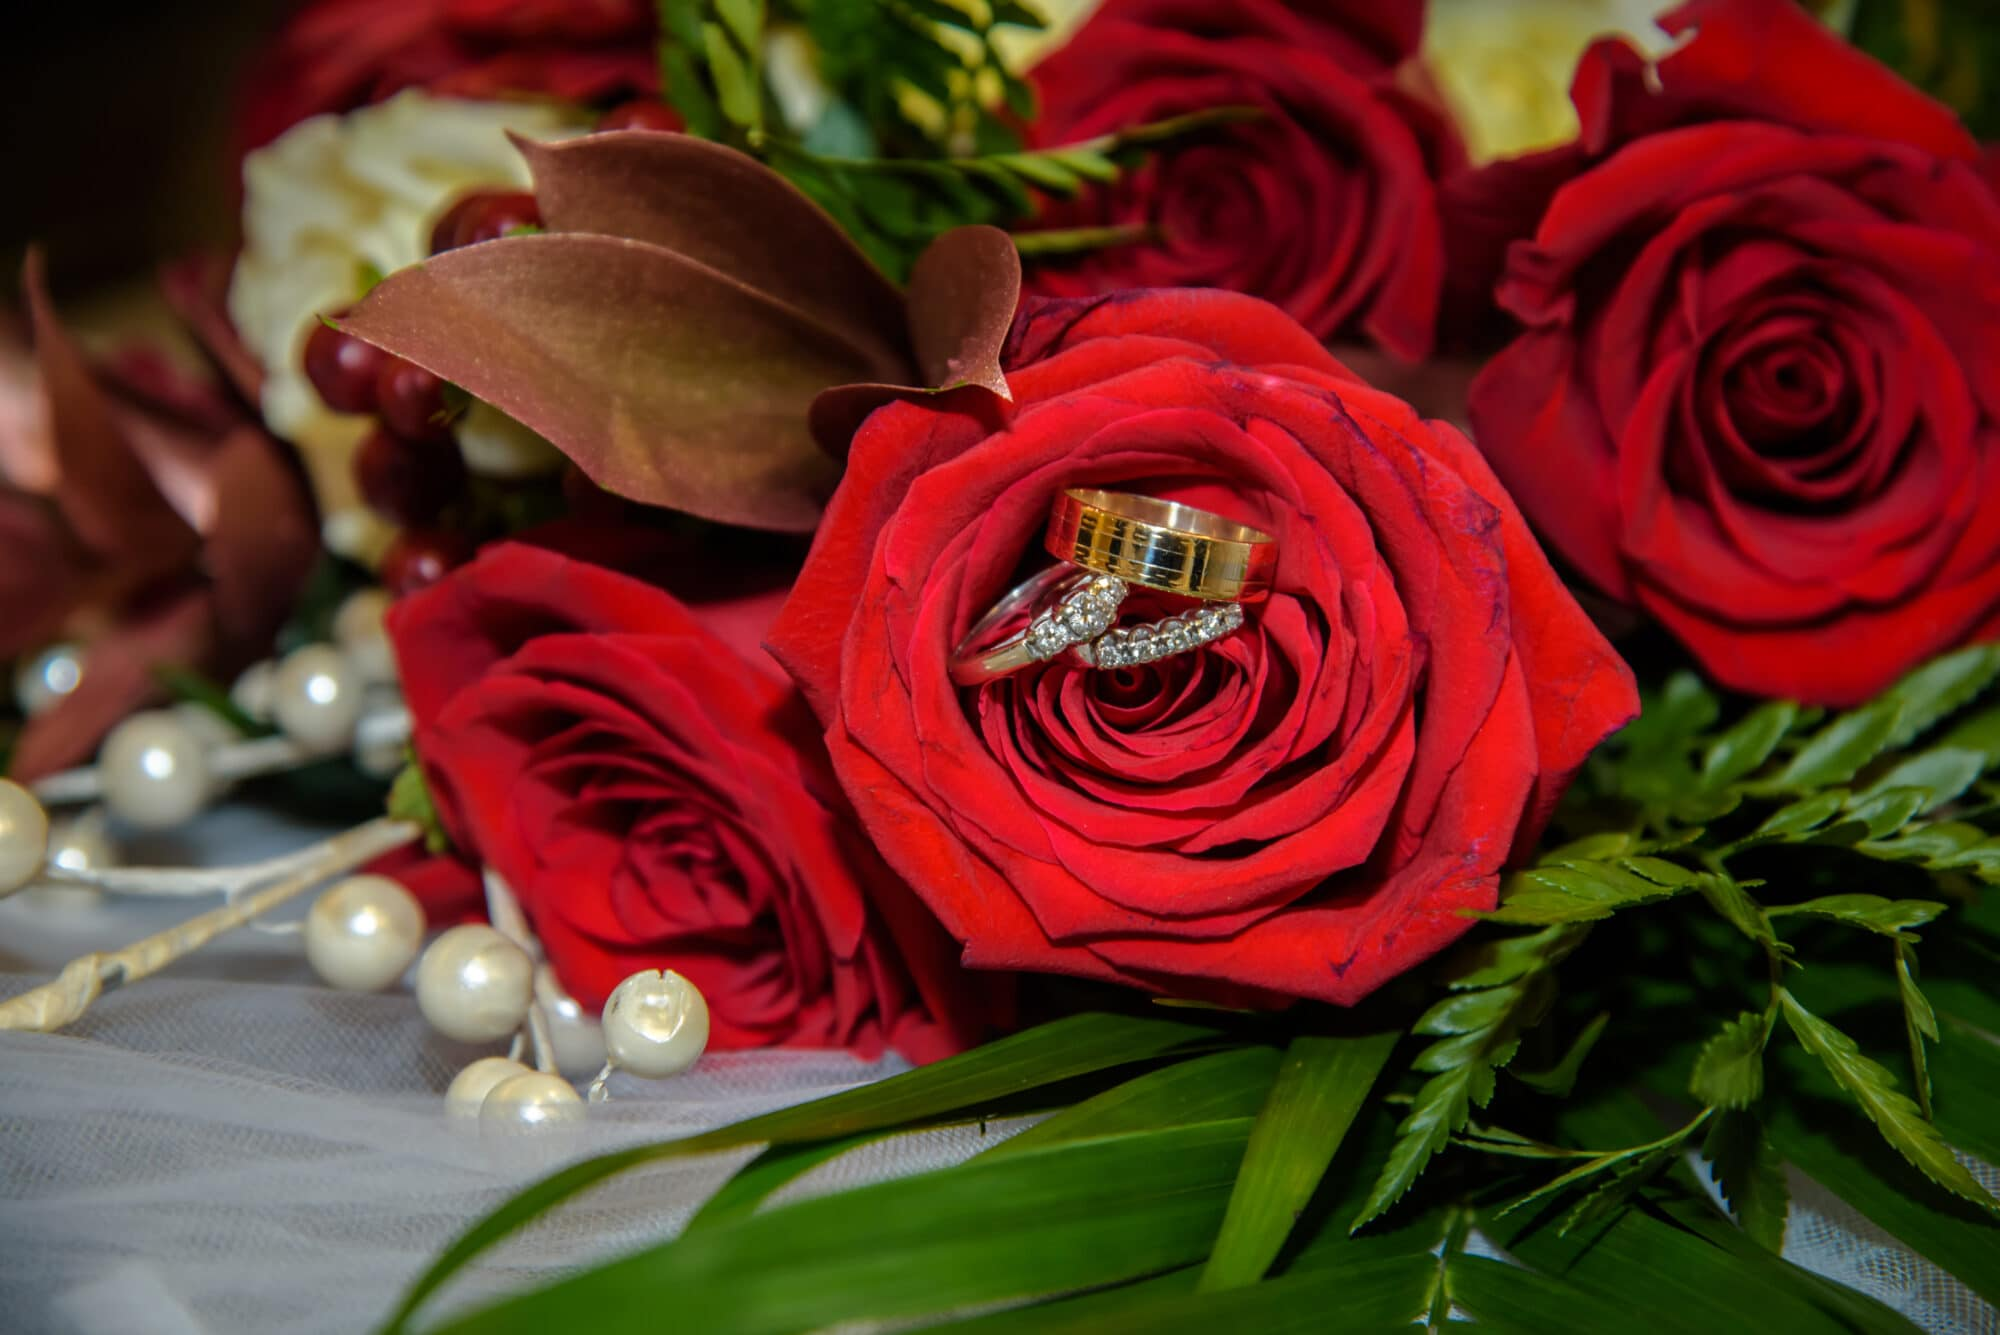 The bridal wedding bouquet of red roses with the wedding rings.